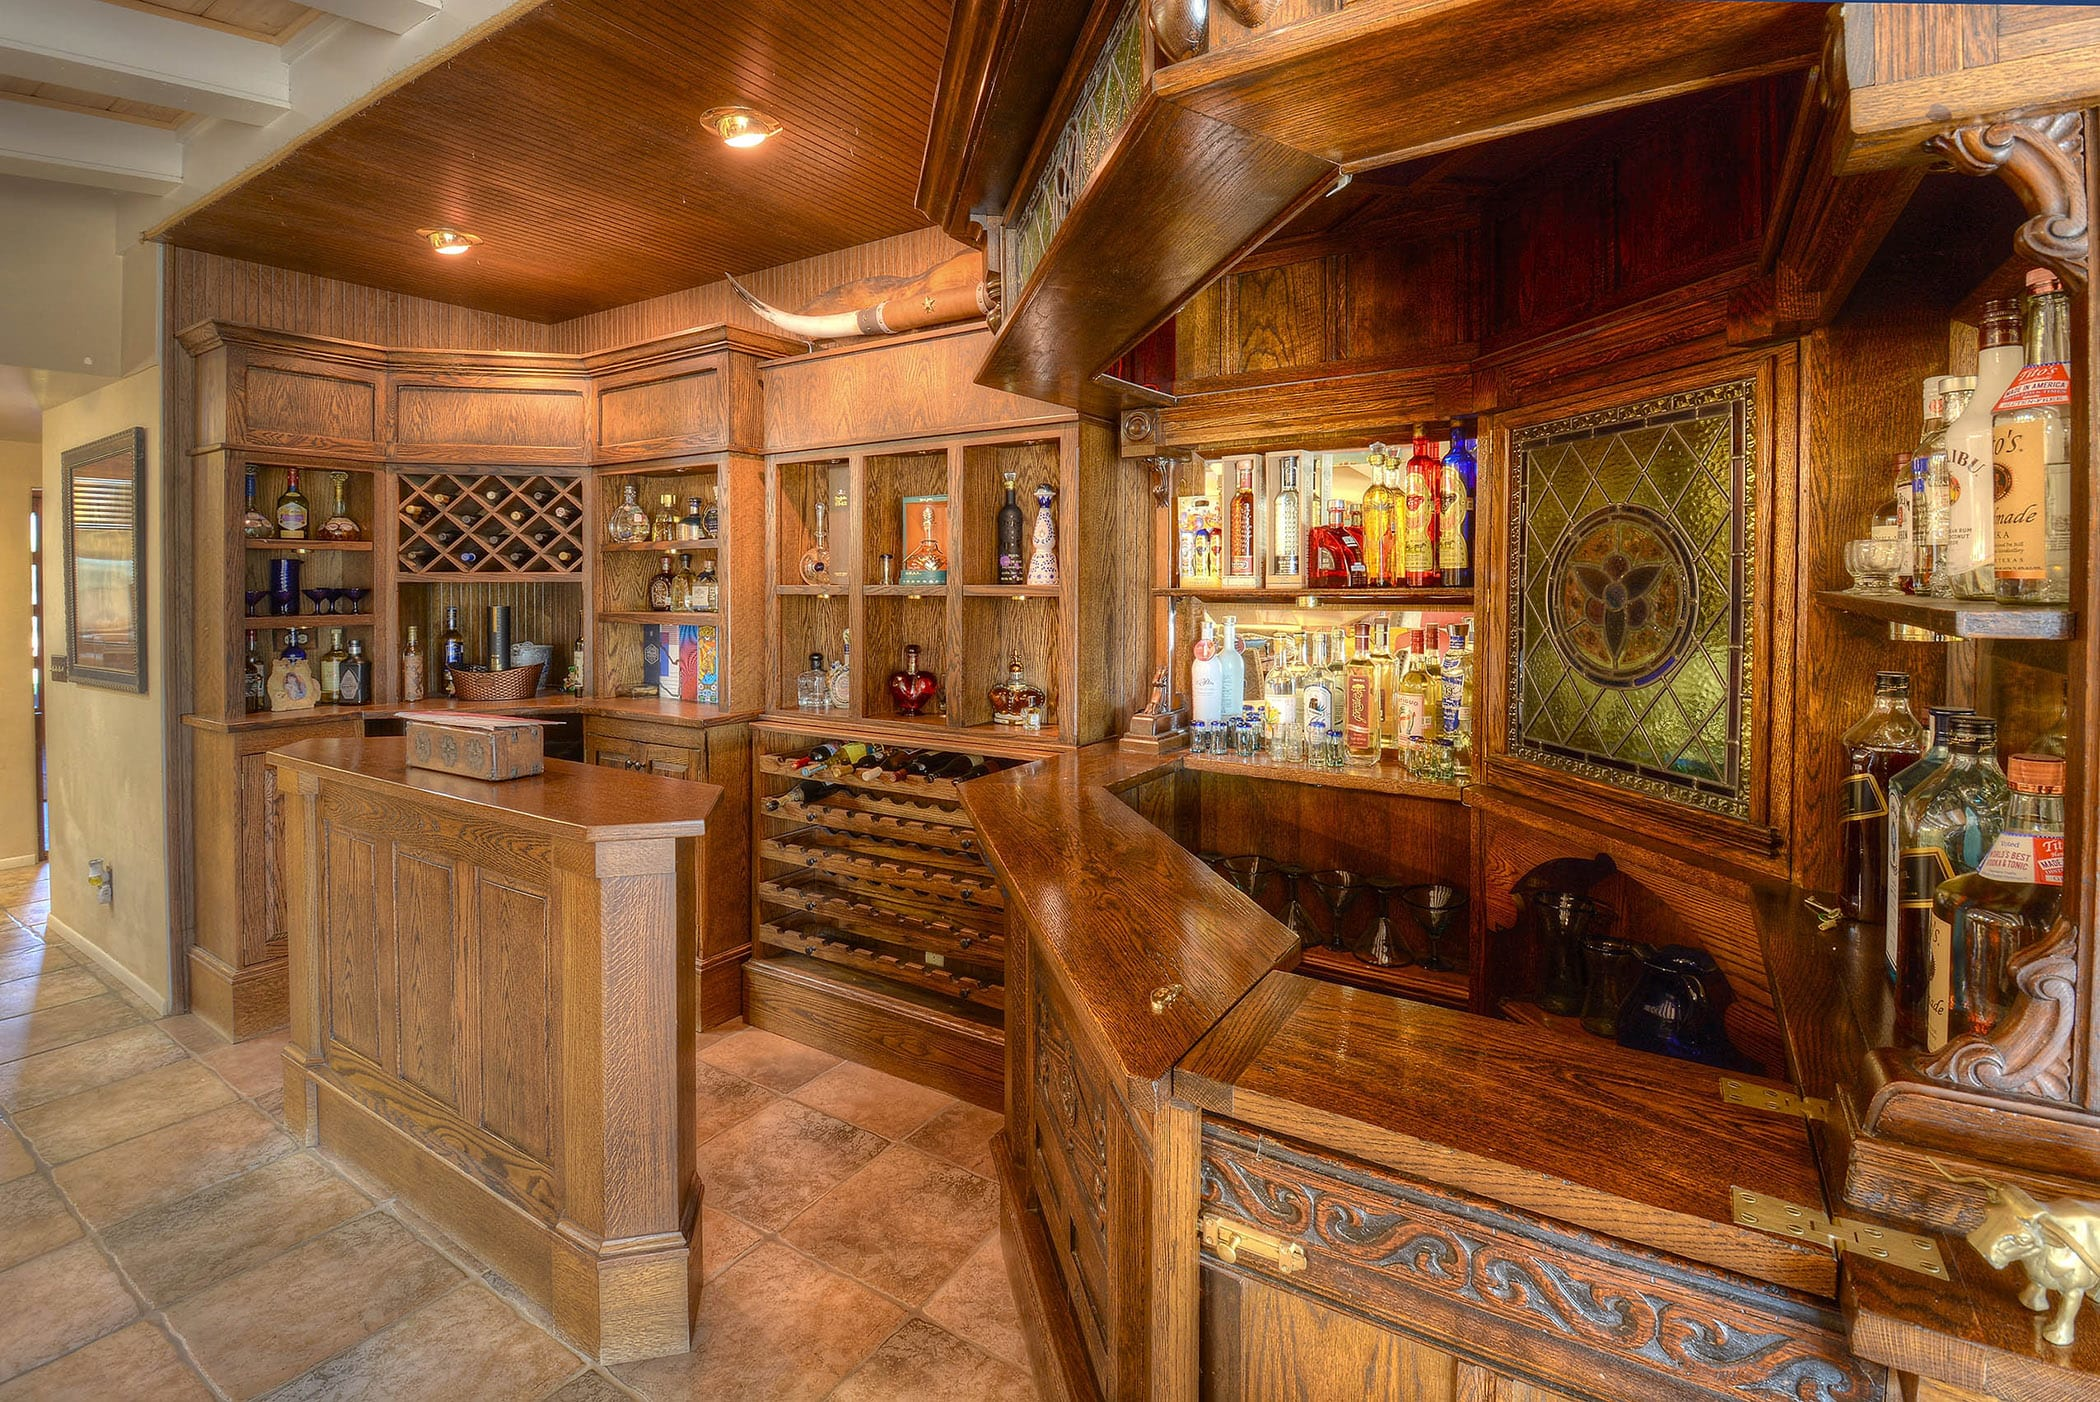 Mix your favorite drink in the full bar beside the dining area.